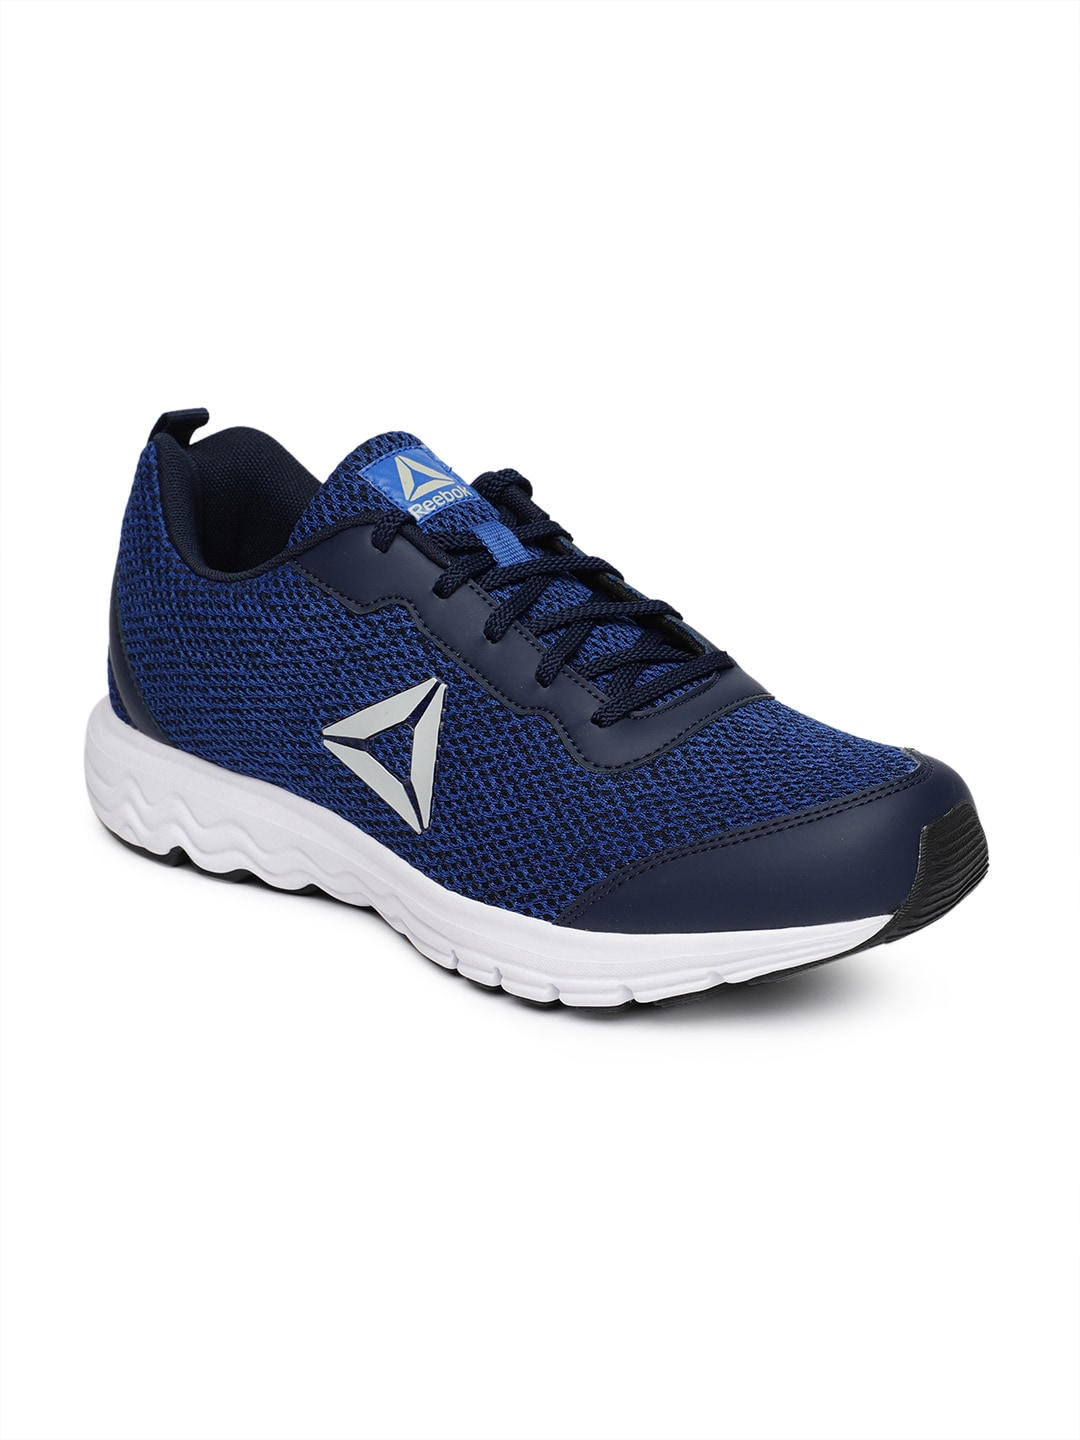 3926e954c919f2 reebok running sports shoes off 62% - www.voiretplus.fr